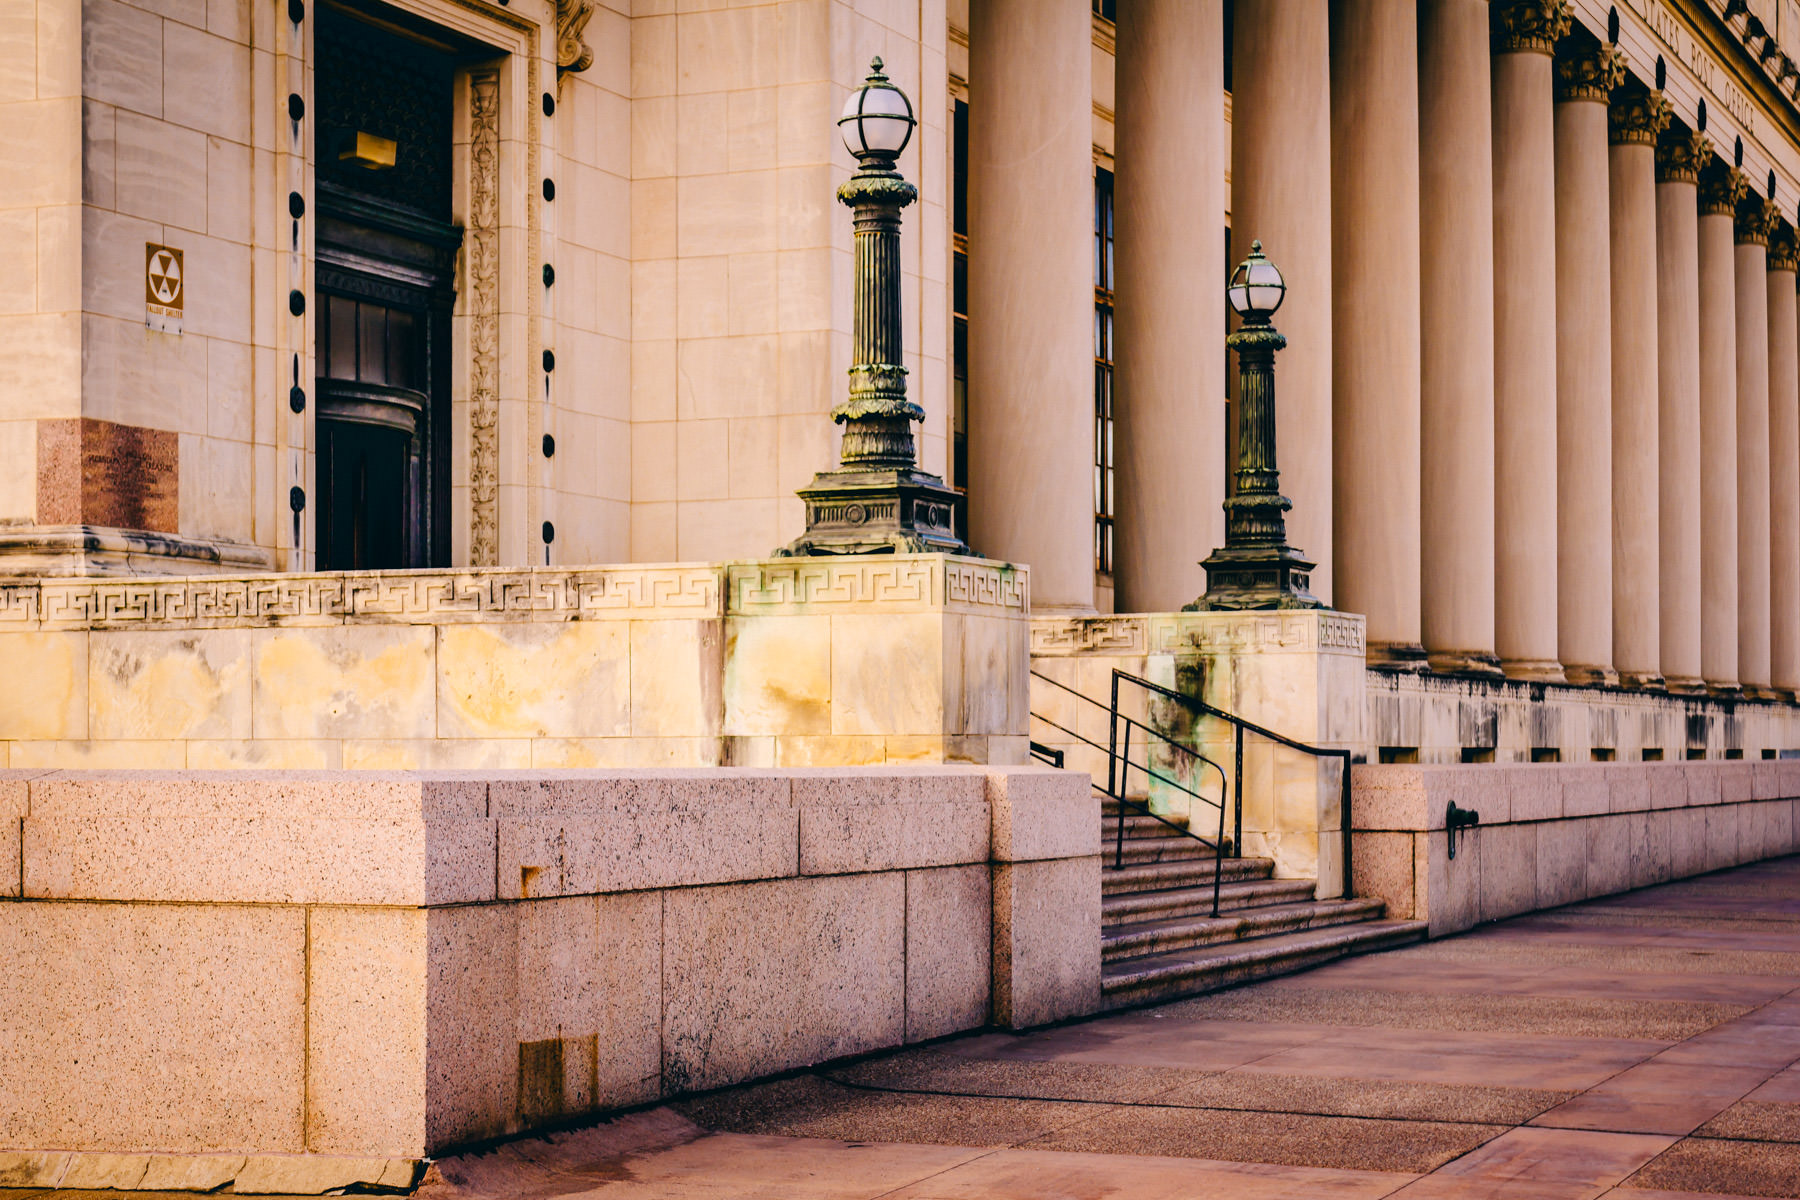 The neo-classical architecture of Fort Worth, Texas' main post office.